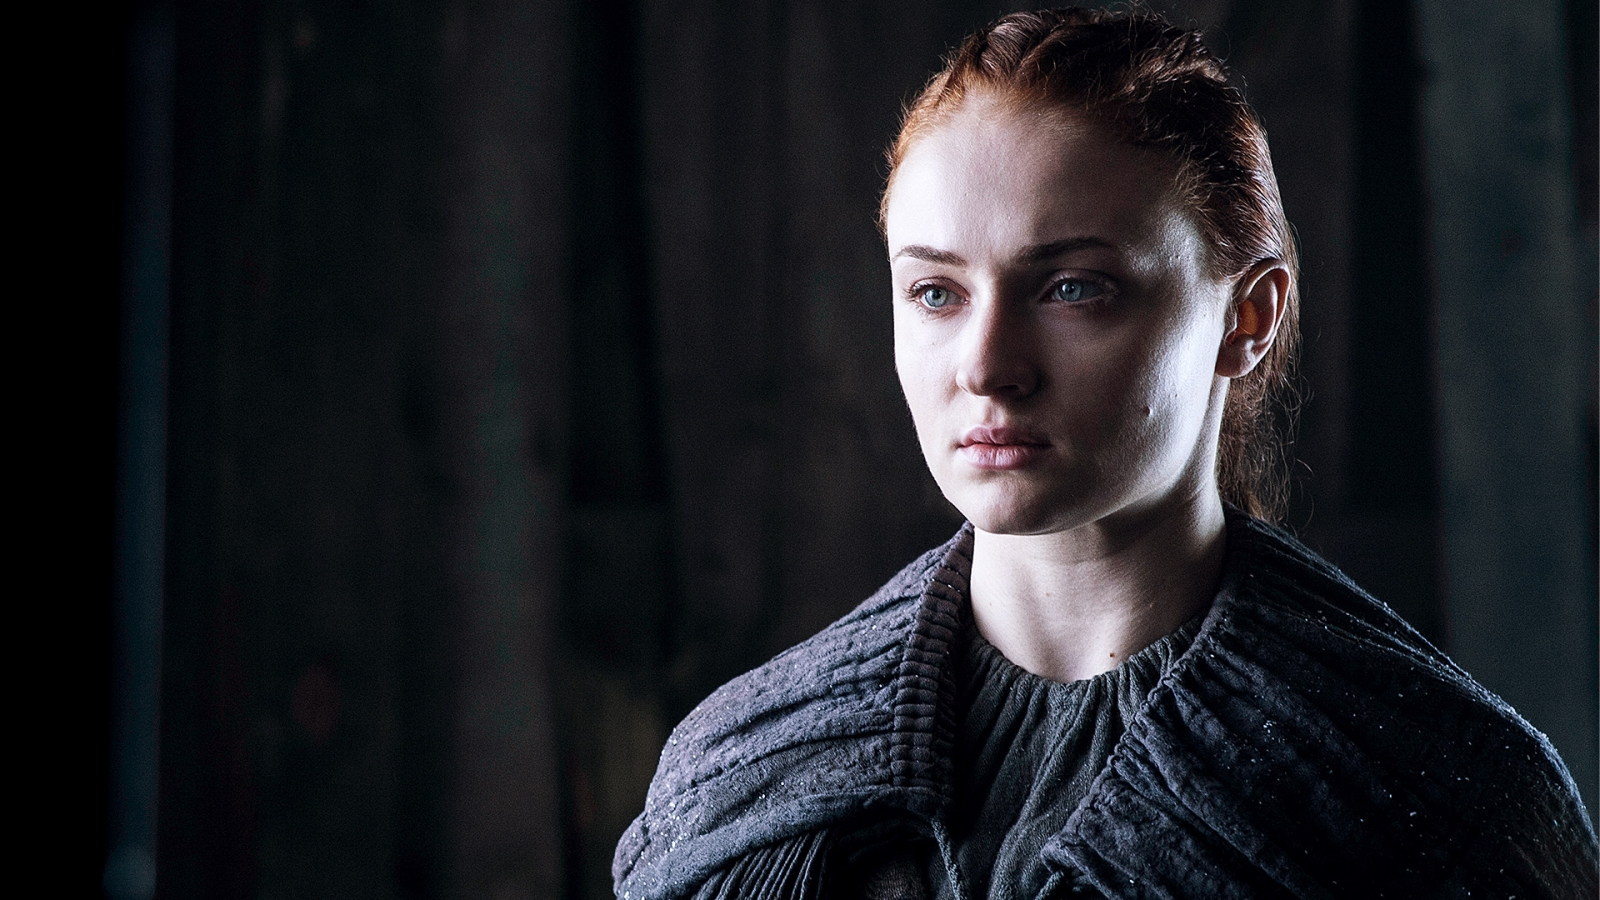 Sophie Turner: 'Focus on my relationship is frustrating'